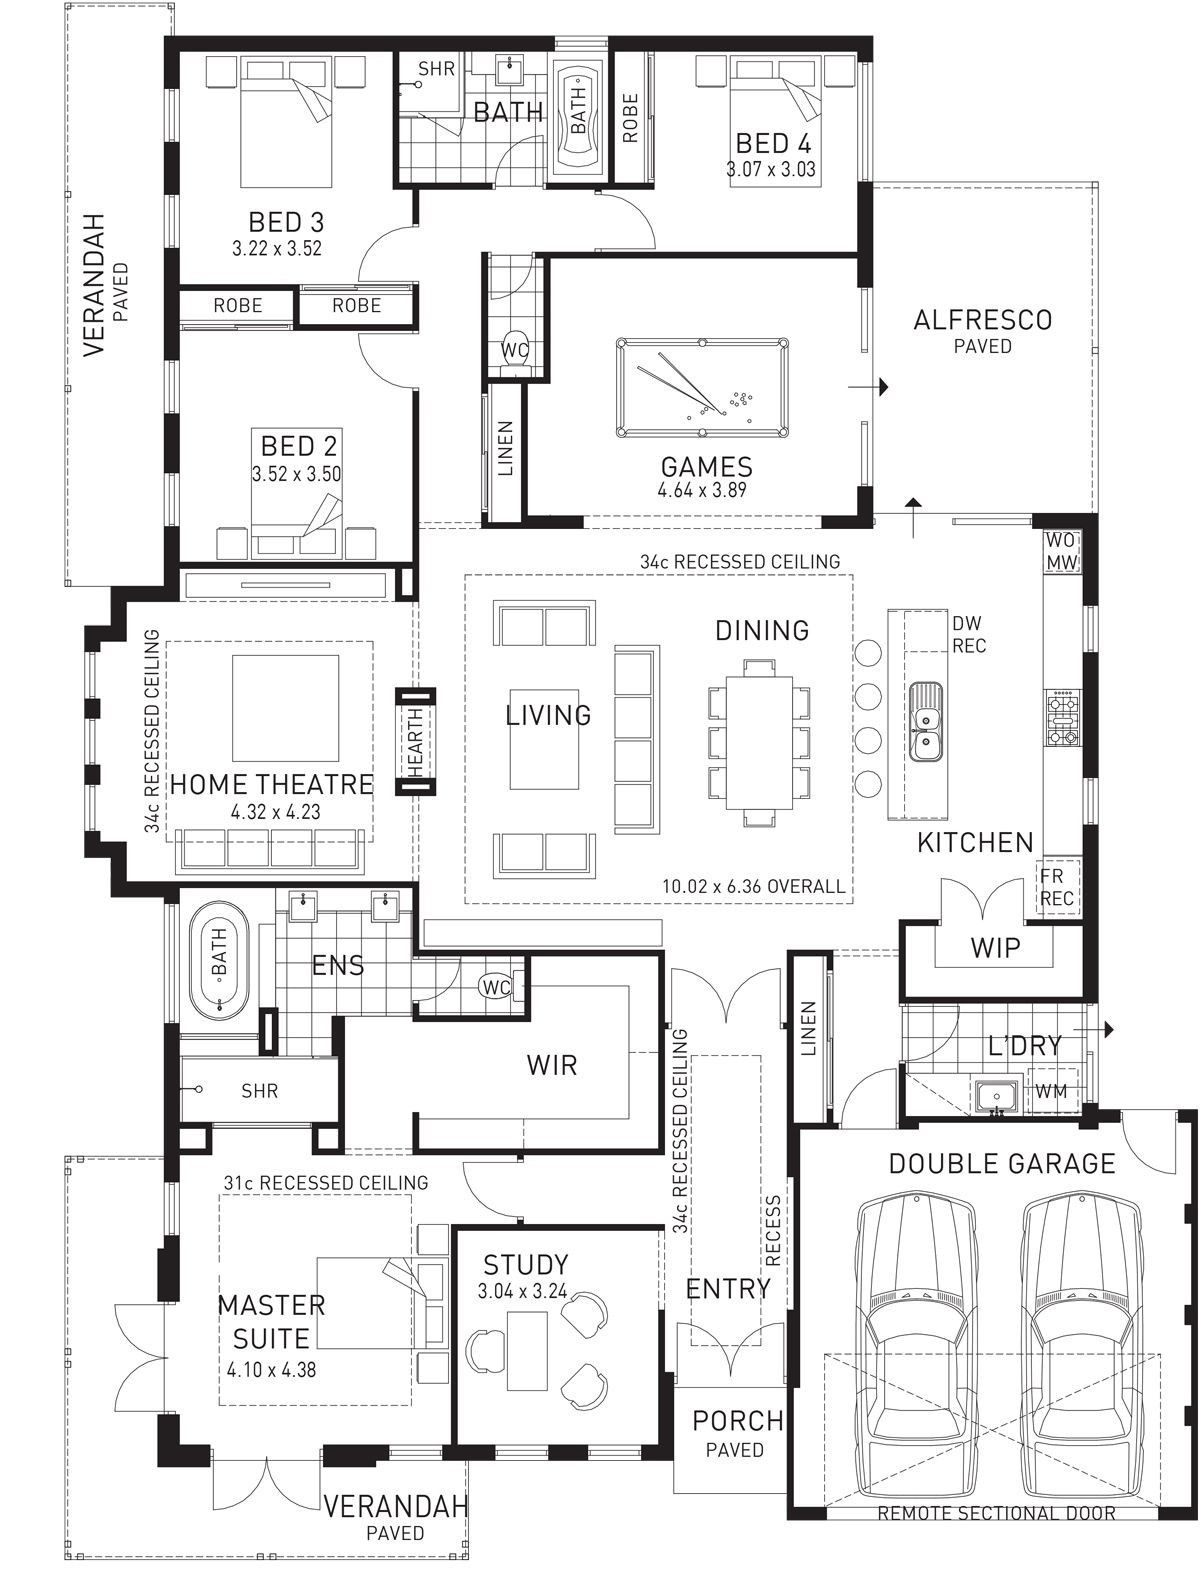 Gym Floor Plan ly Gym Designs ... | furniture in 2019 | House ... on home gym layout, home plans with exercise room, telephone floor plans, home gym blog, home gym maintenance, training floor plans, home gym flooring, family floor plans, home locker room plans, home weight room plans, gym layout plans, pool floor plans, home gym blueprints, fitness center floor plans, house floor plans, home pool plans, weight lifting floor plans, home gym materials, home gym design, home gym building,